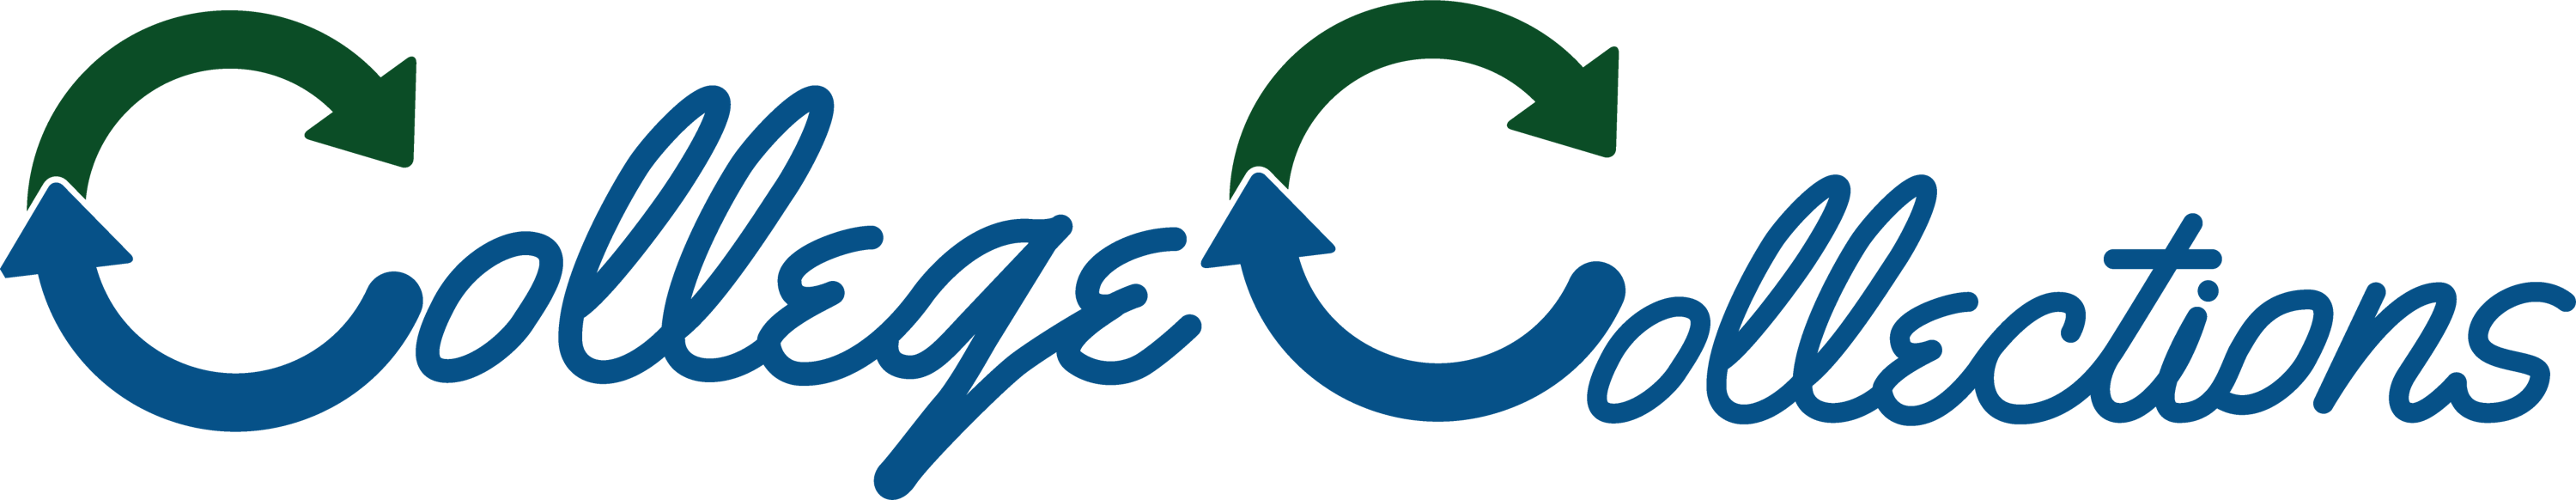 College Collections Logo